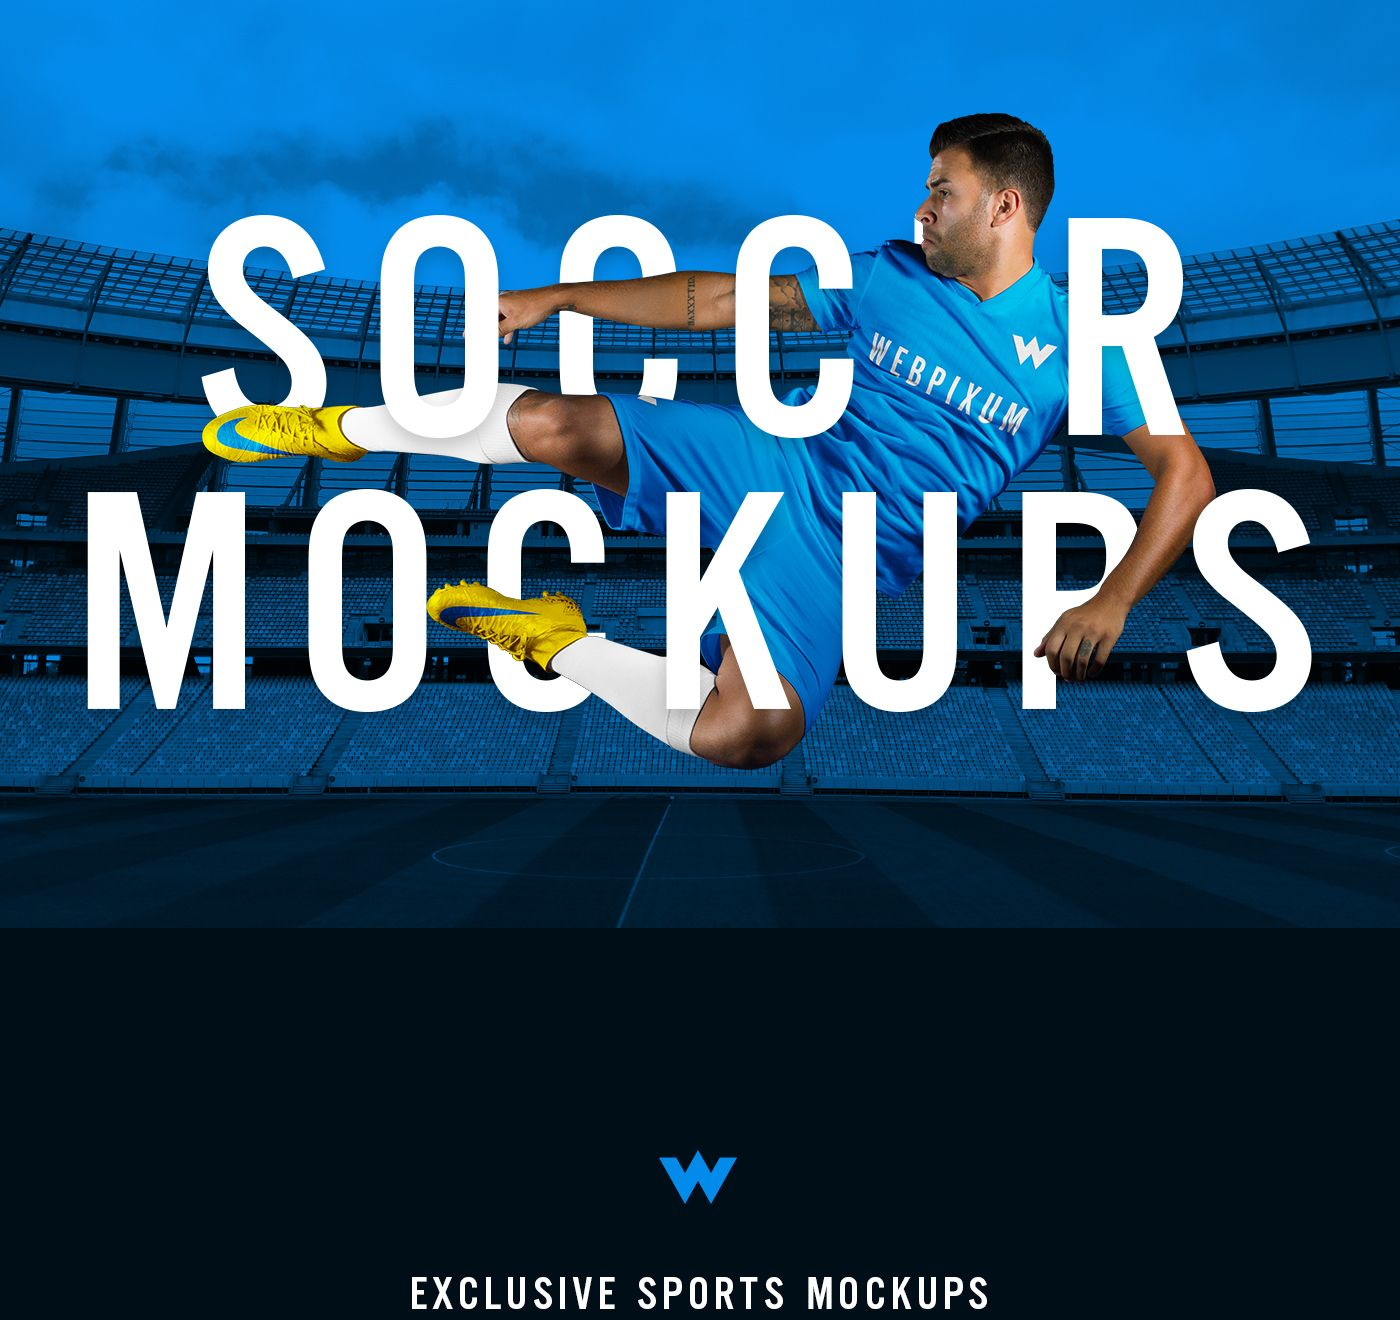 Download Full Soccer Kit Front View Mockup Volley Free Psd On Behance Soccer Kits Mls Soccer Mockup Free Psd